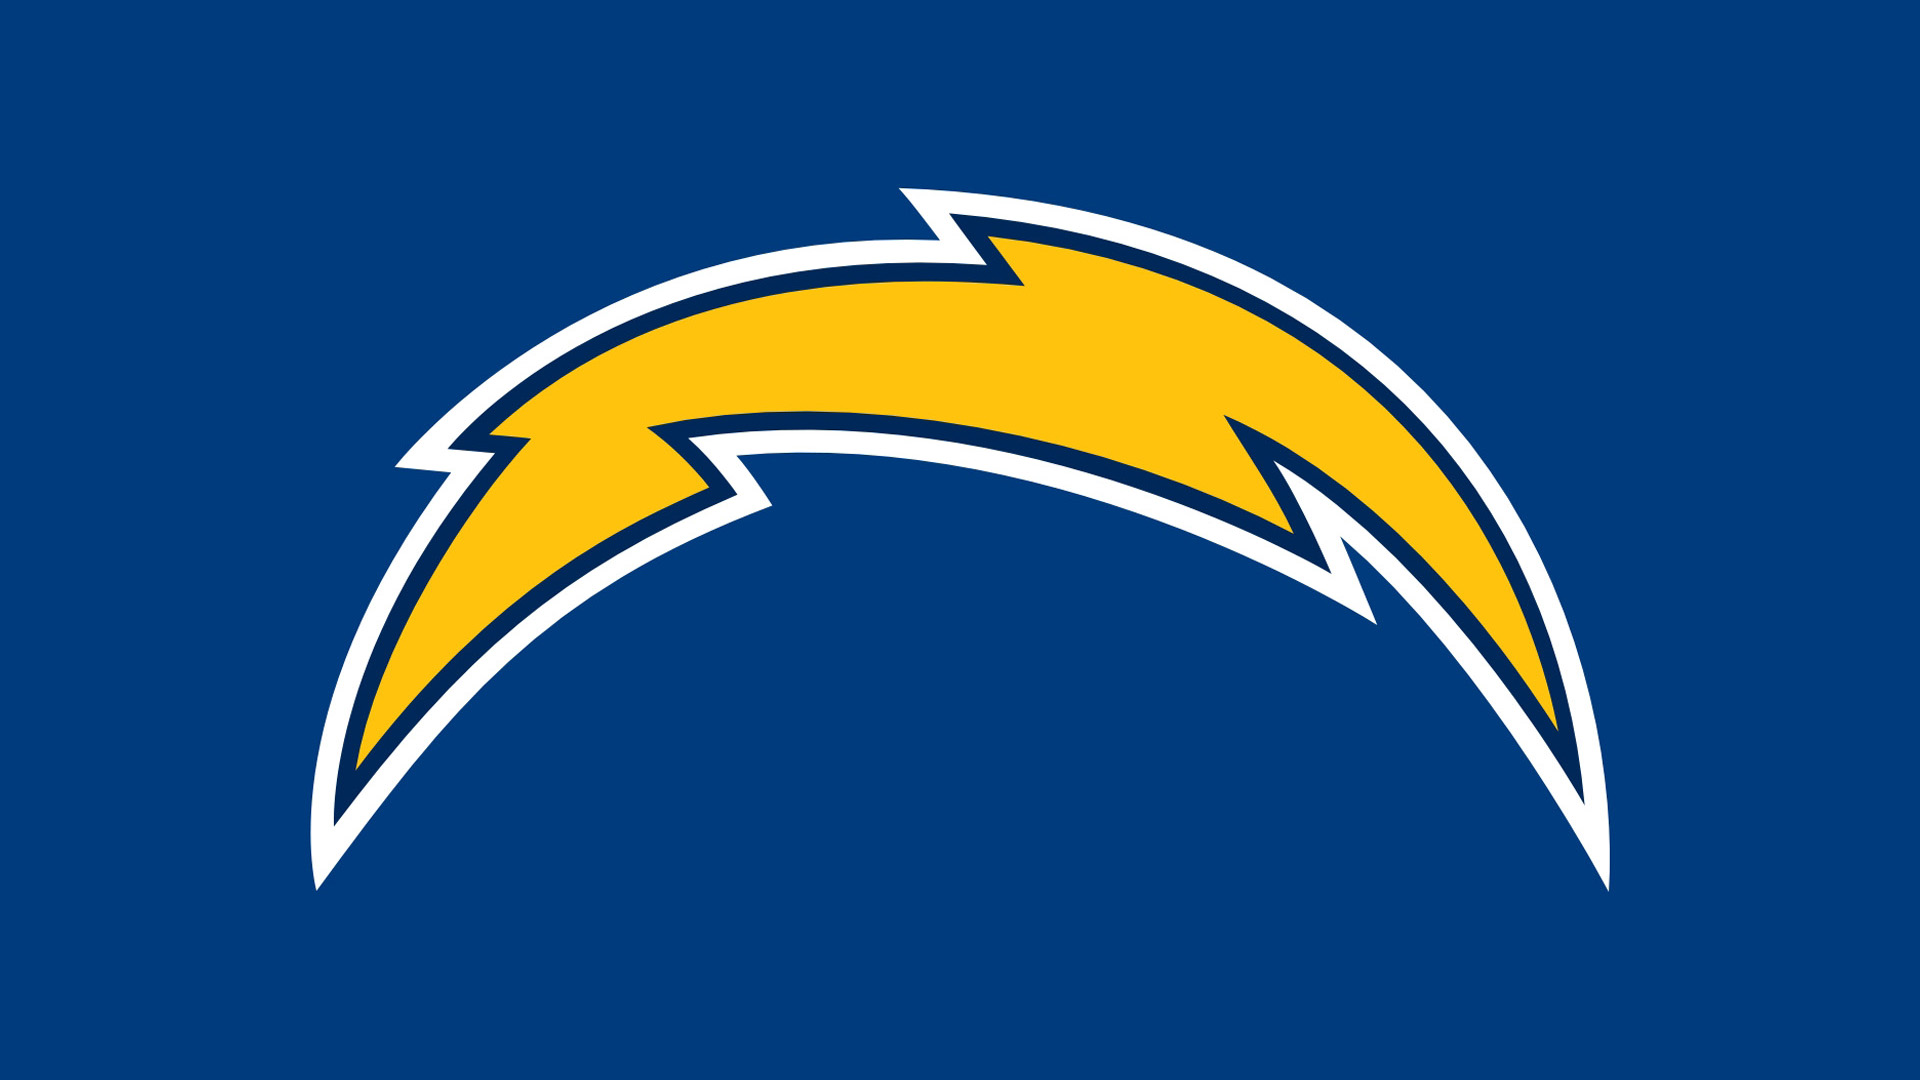 San Diego Chargers3 1920 215 1080 Digital Citizen